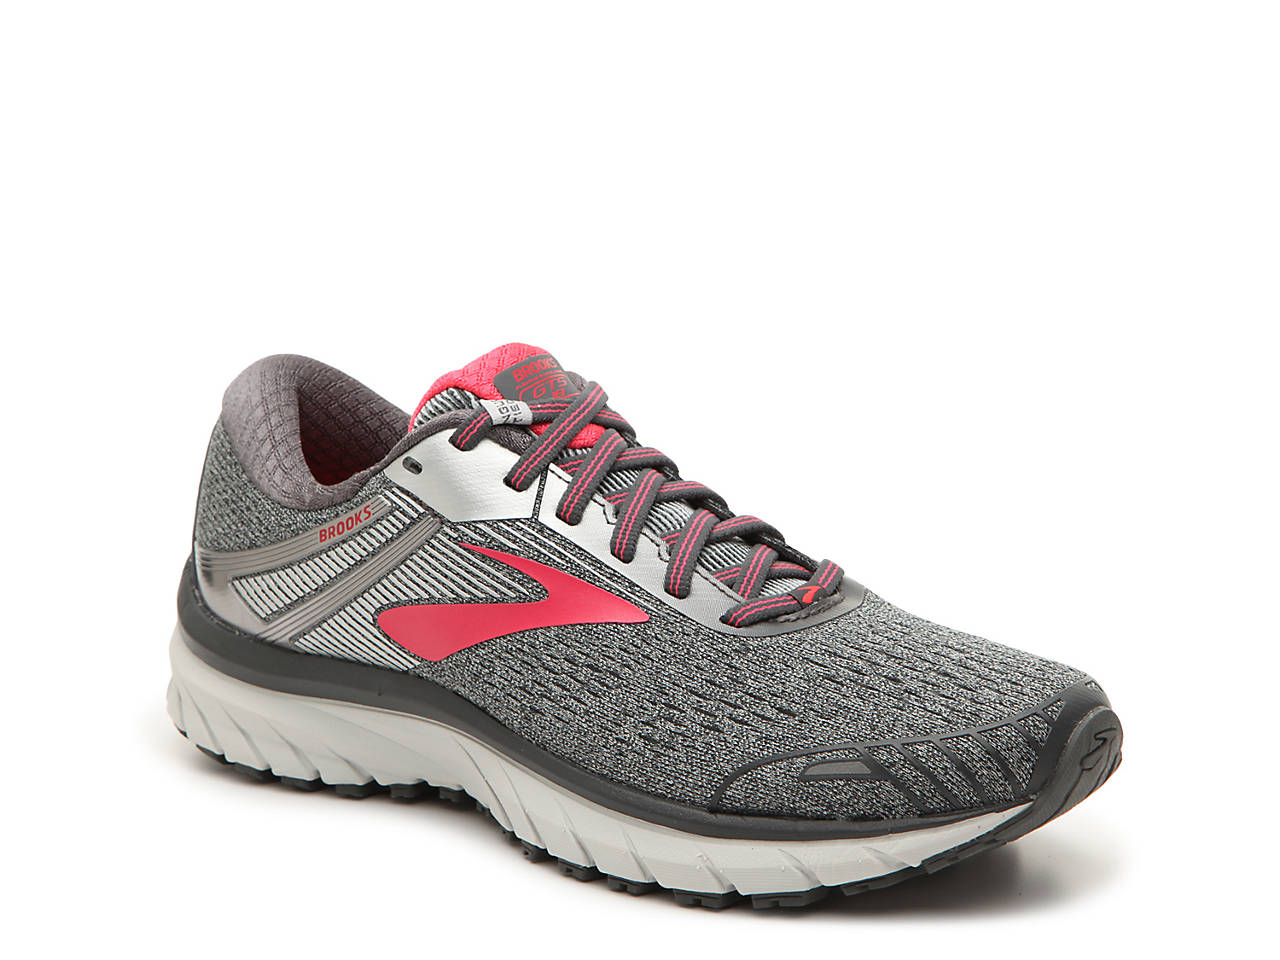 0ba09e561ce Brooks Adrenaline GTS 18 Performance Running Shoe - Women s Women s Shoes